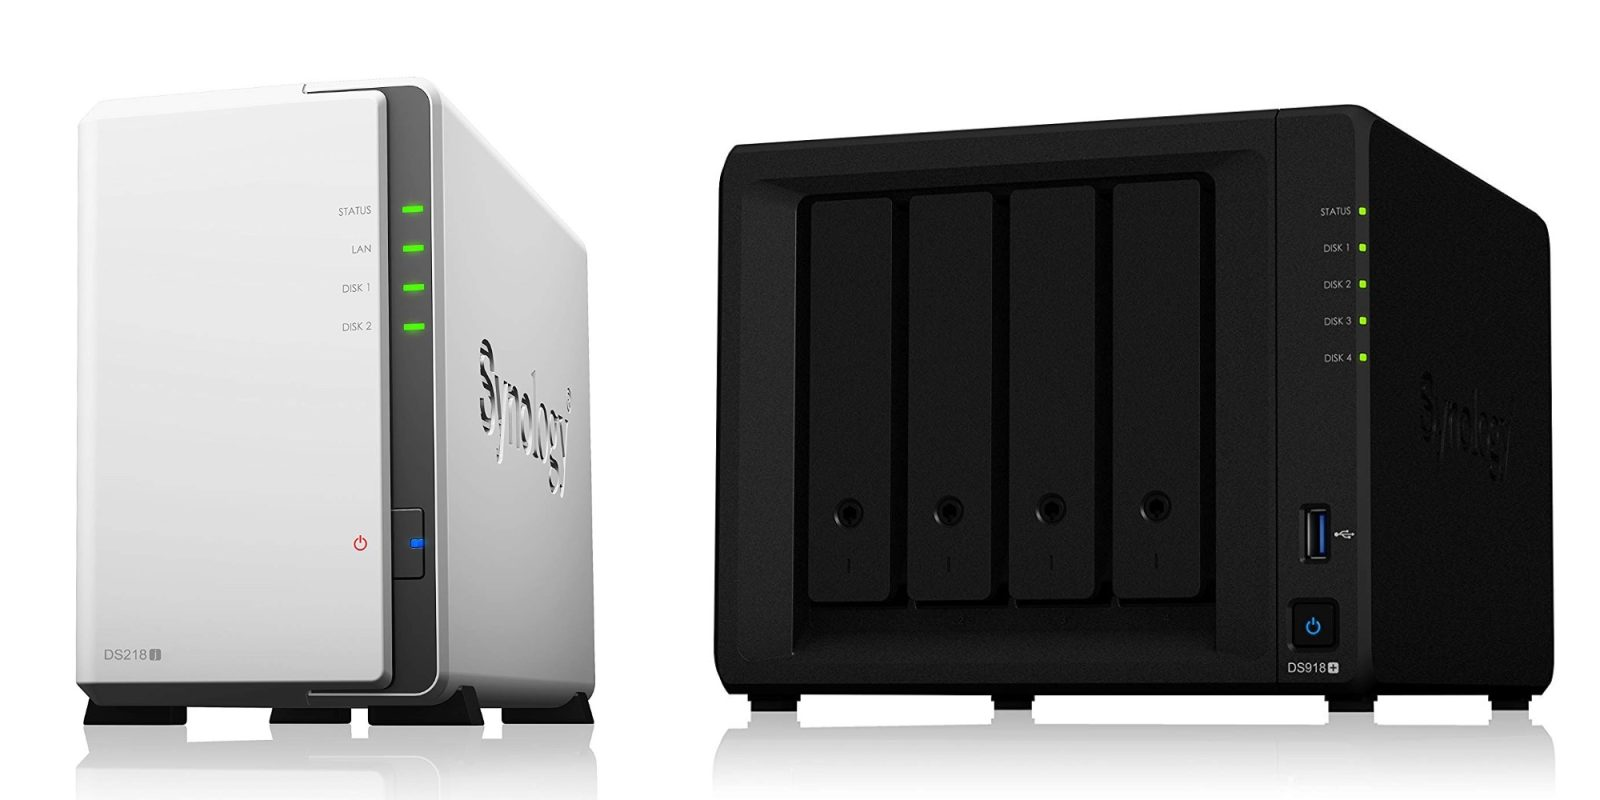 Synology's 2-Bay NAS hits new $119 all-time low for Prime Day + more from $5